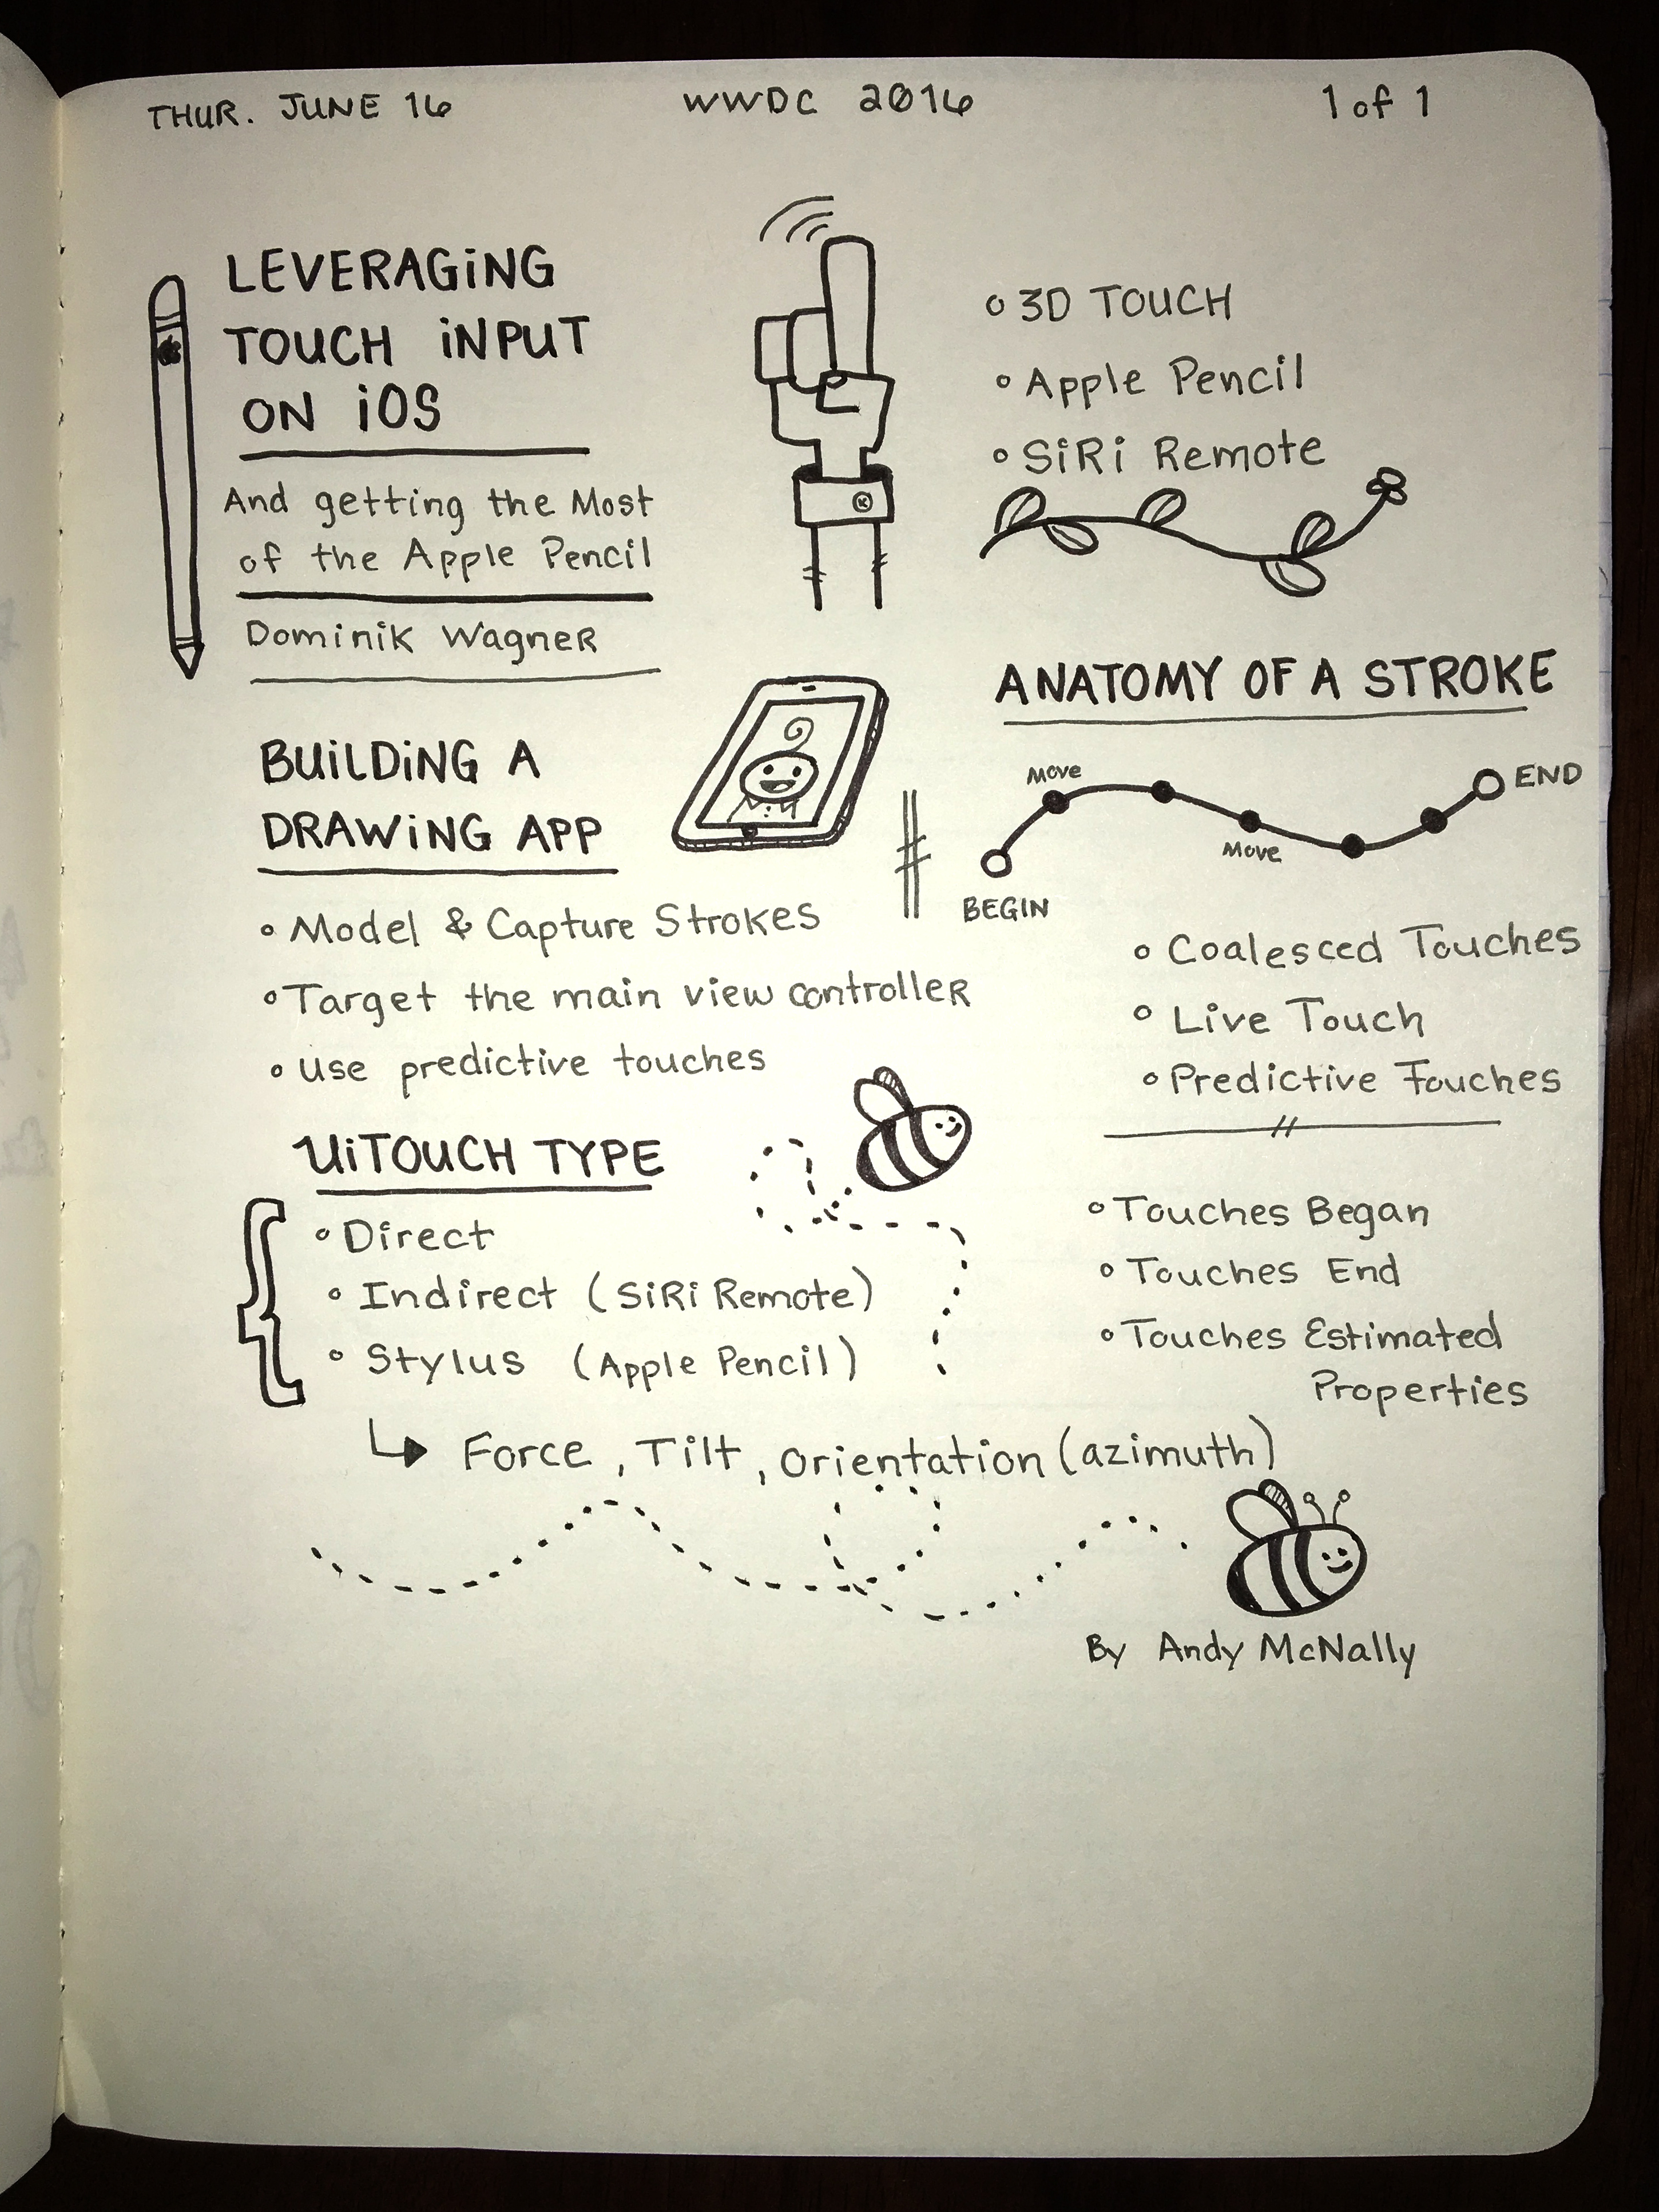 WWDC sketchnotes - Leveraging Touch Input on iOS